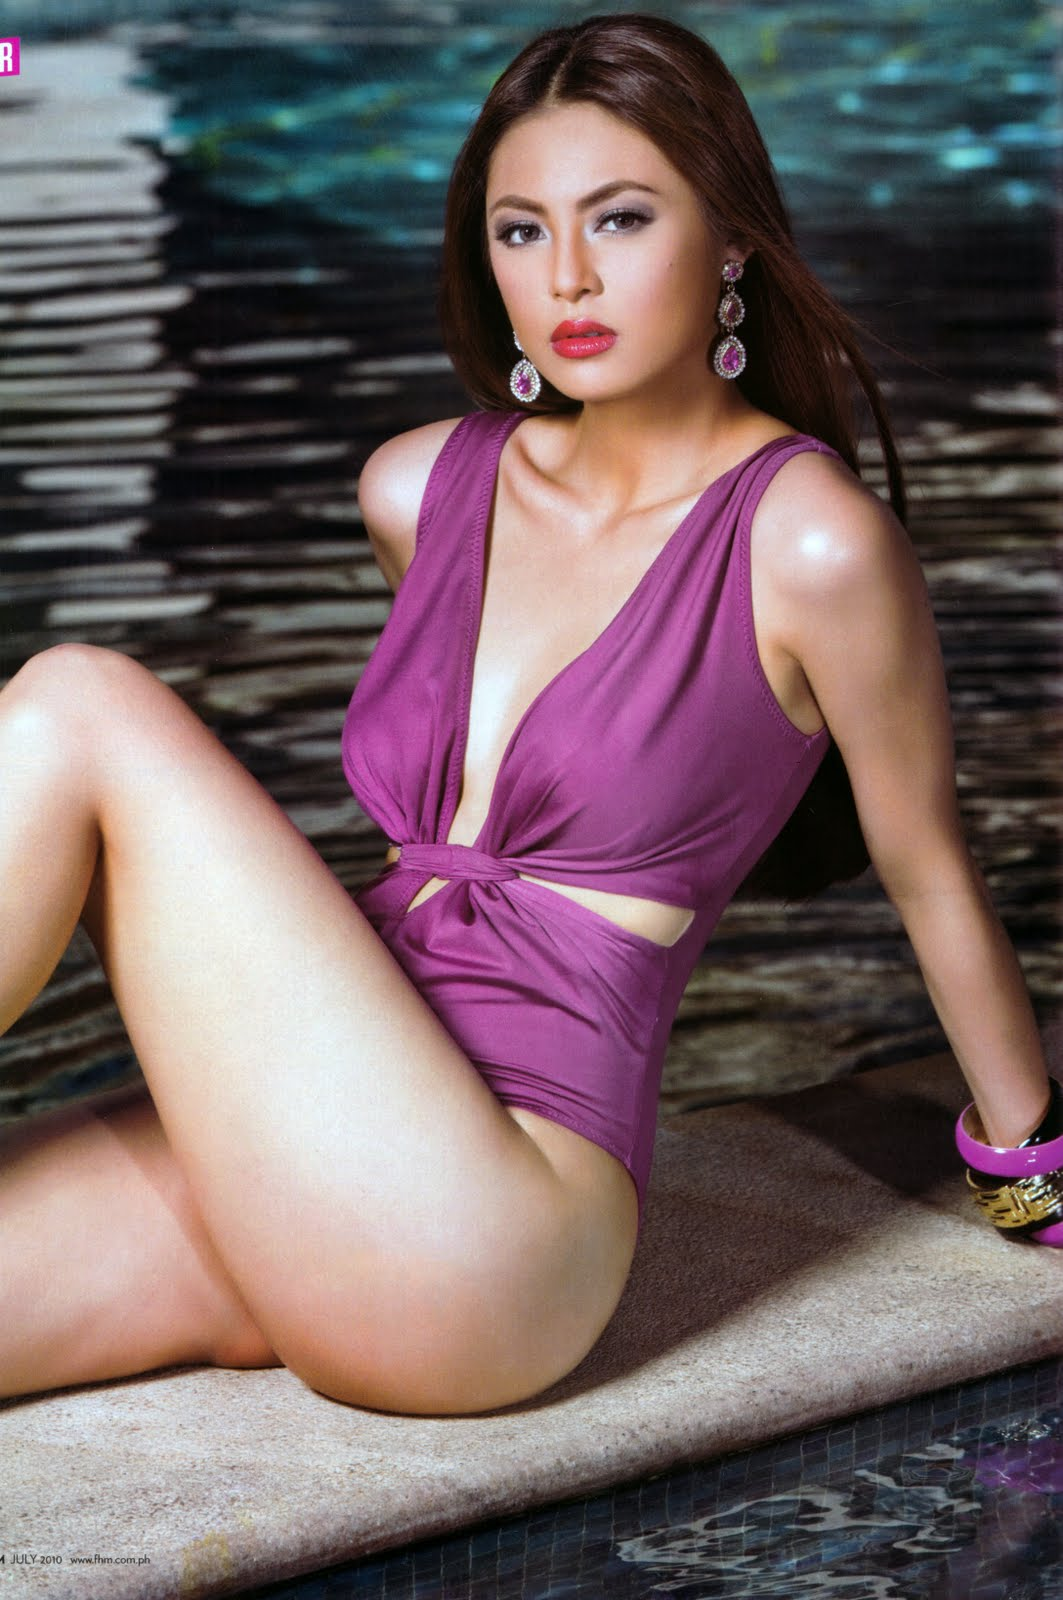 www pinoy sex scandal com ph http://pinaybook.blogspot.com/2011/05/sexiest-pinay-2011-by-fhm-philippines.html